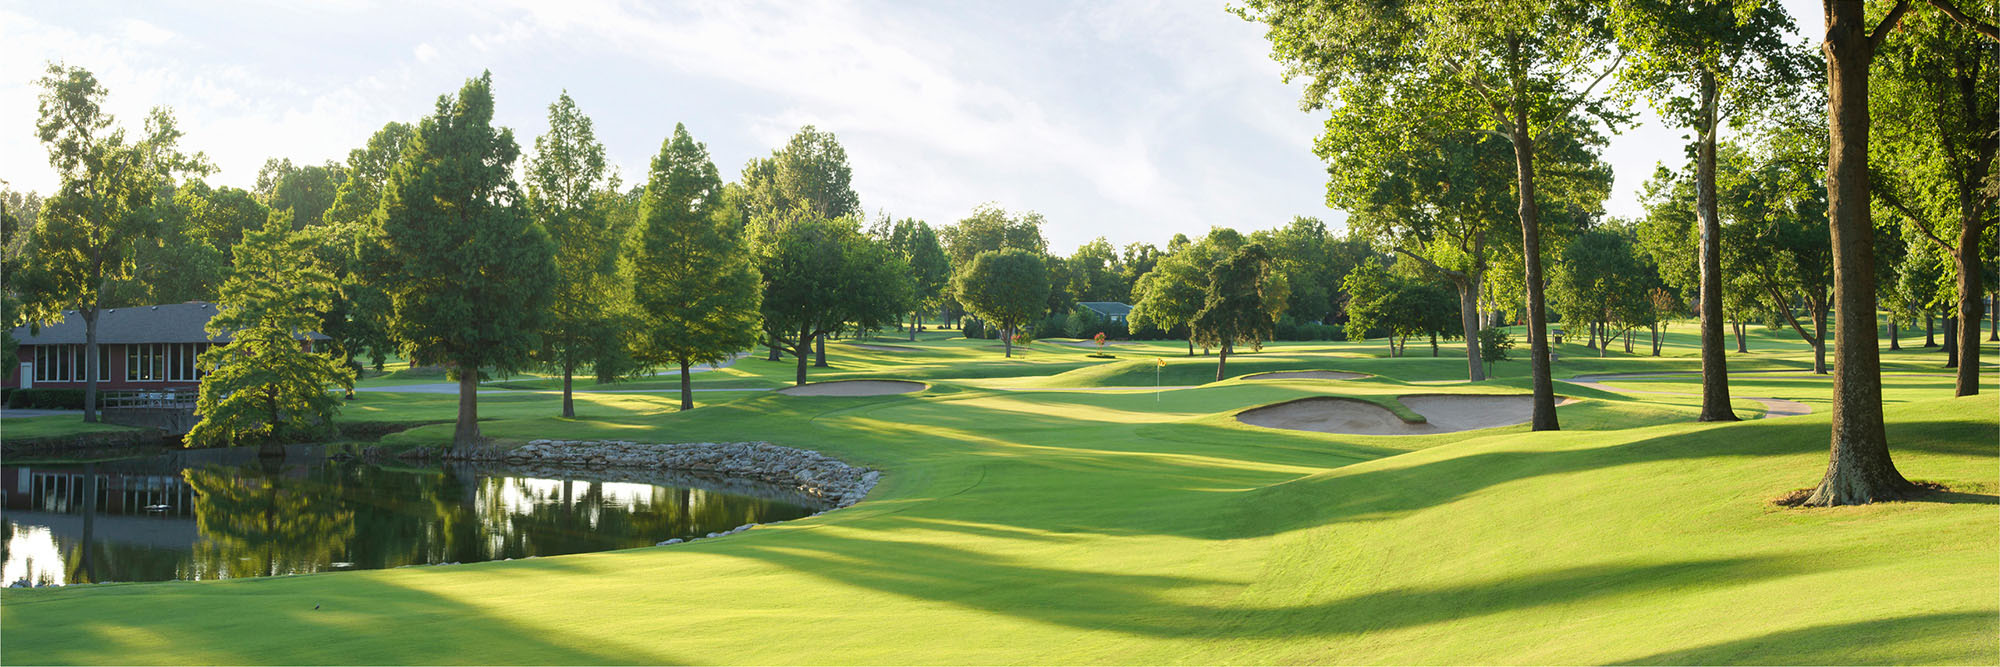 Golf Course Image - Cedar Ridge No. 17